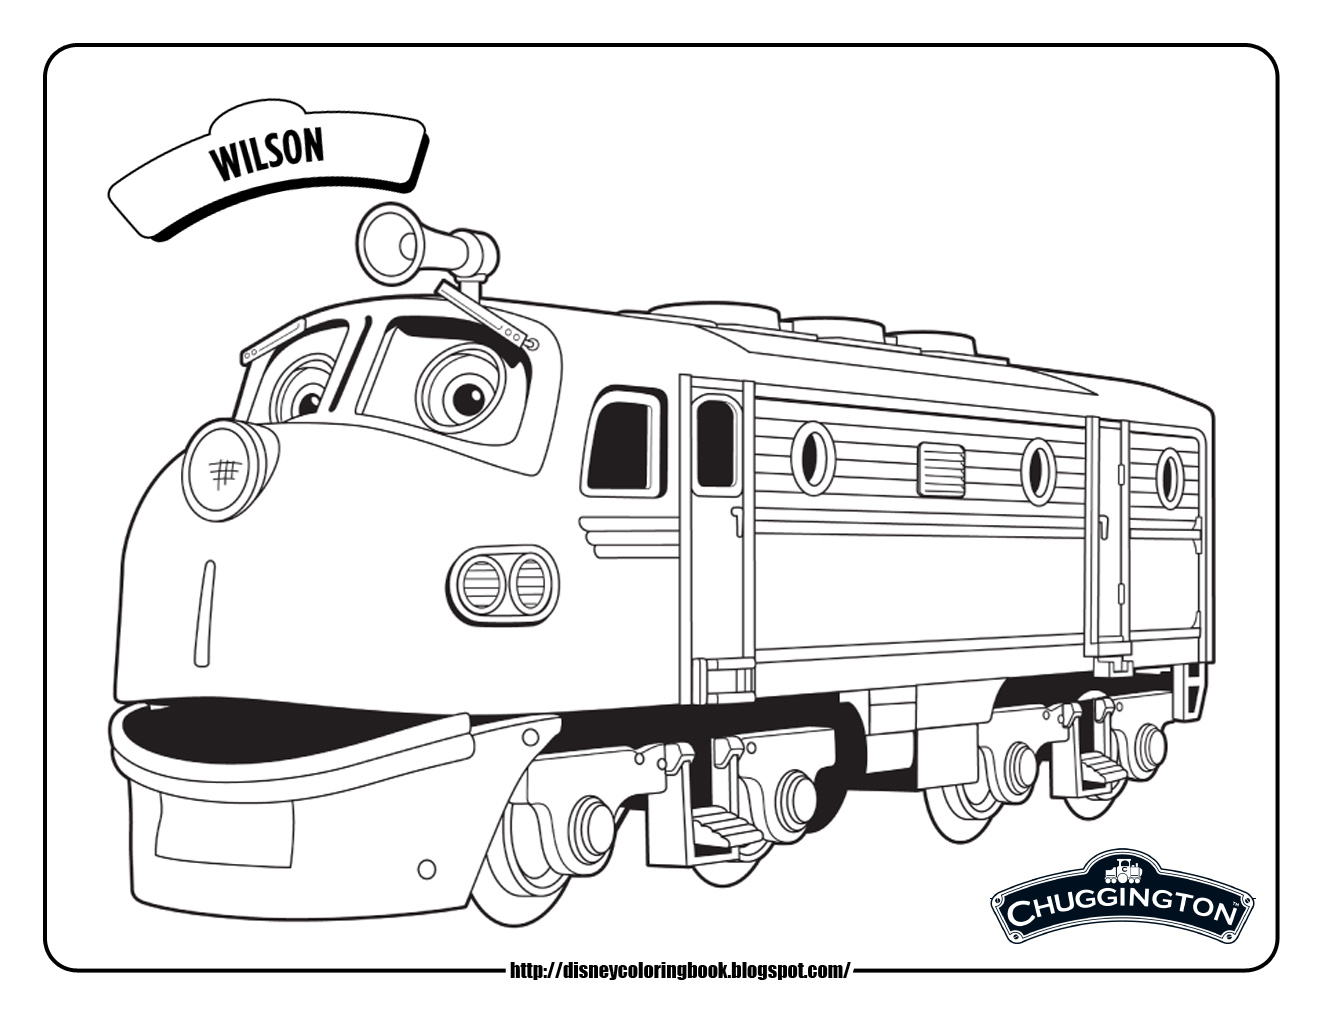 chuggington coloring book pages - photo#31